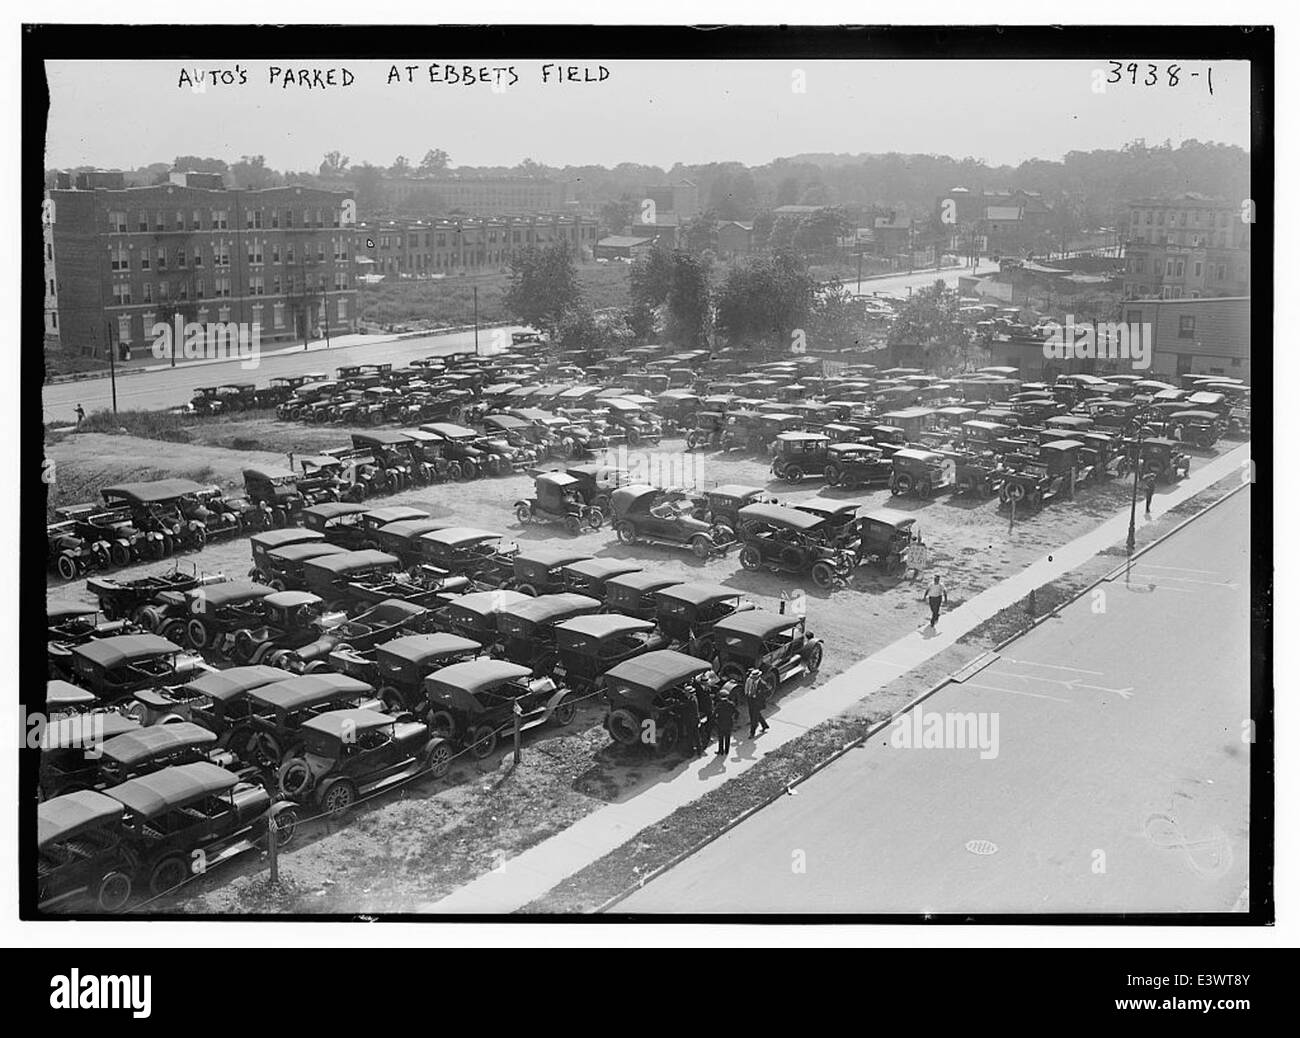 Auto's parked at Ebbets Field (LOC) - Stock Image